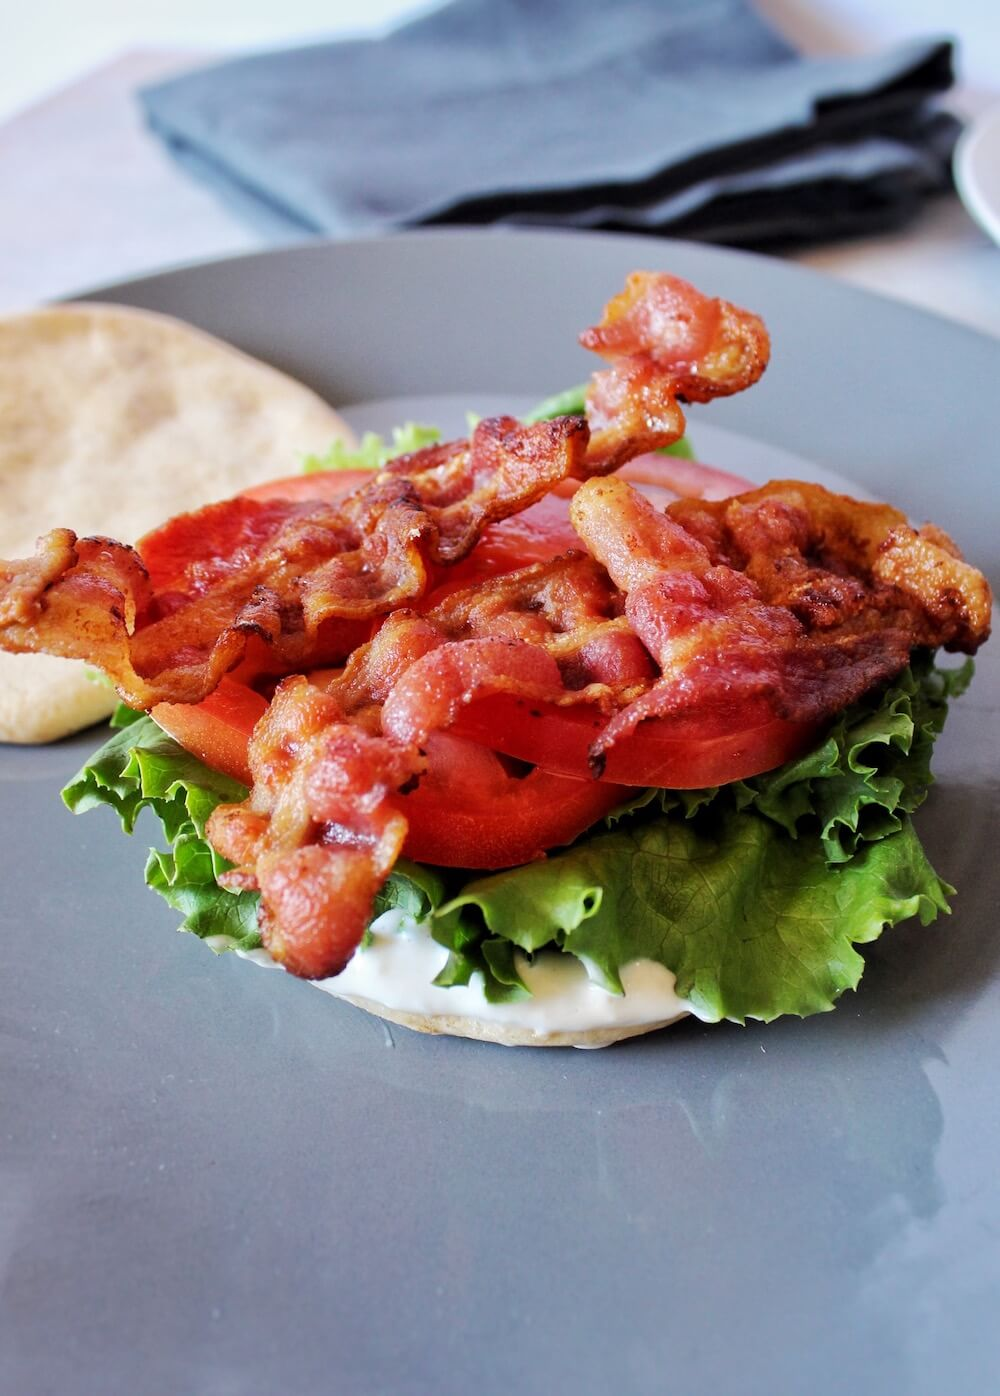 Perfectly cooked bacon atop Keto cloud bread makes this delicious BLT sandwich.